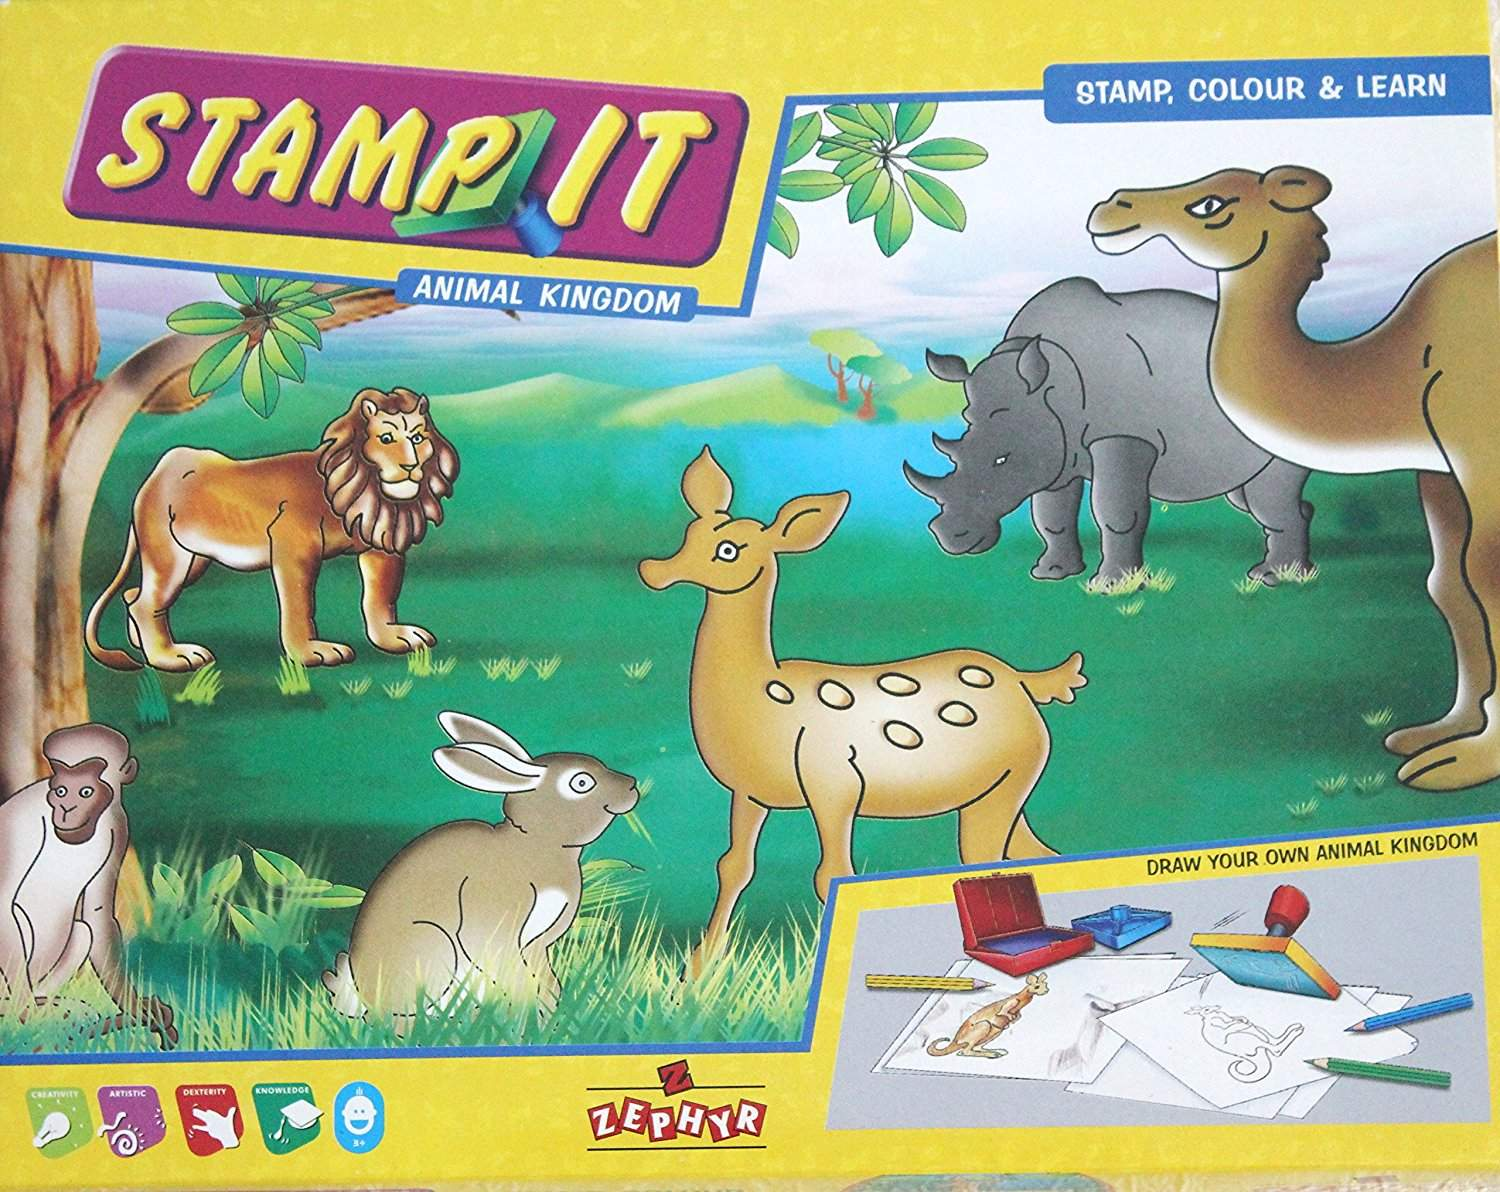 Zephyr Animal Kingdom Stamp Kit